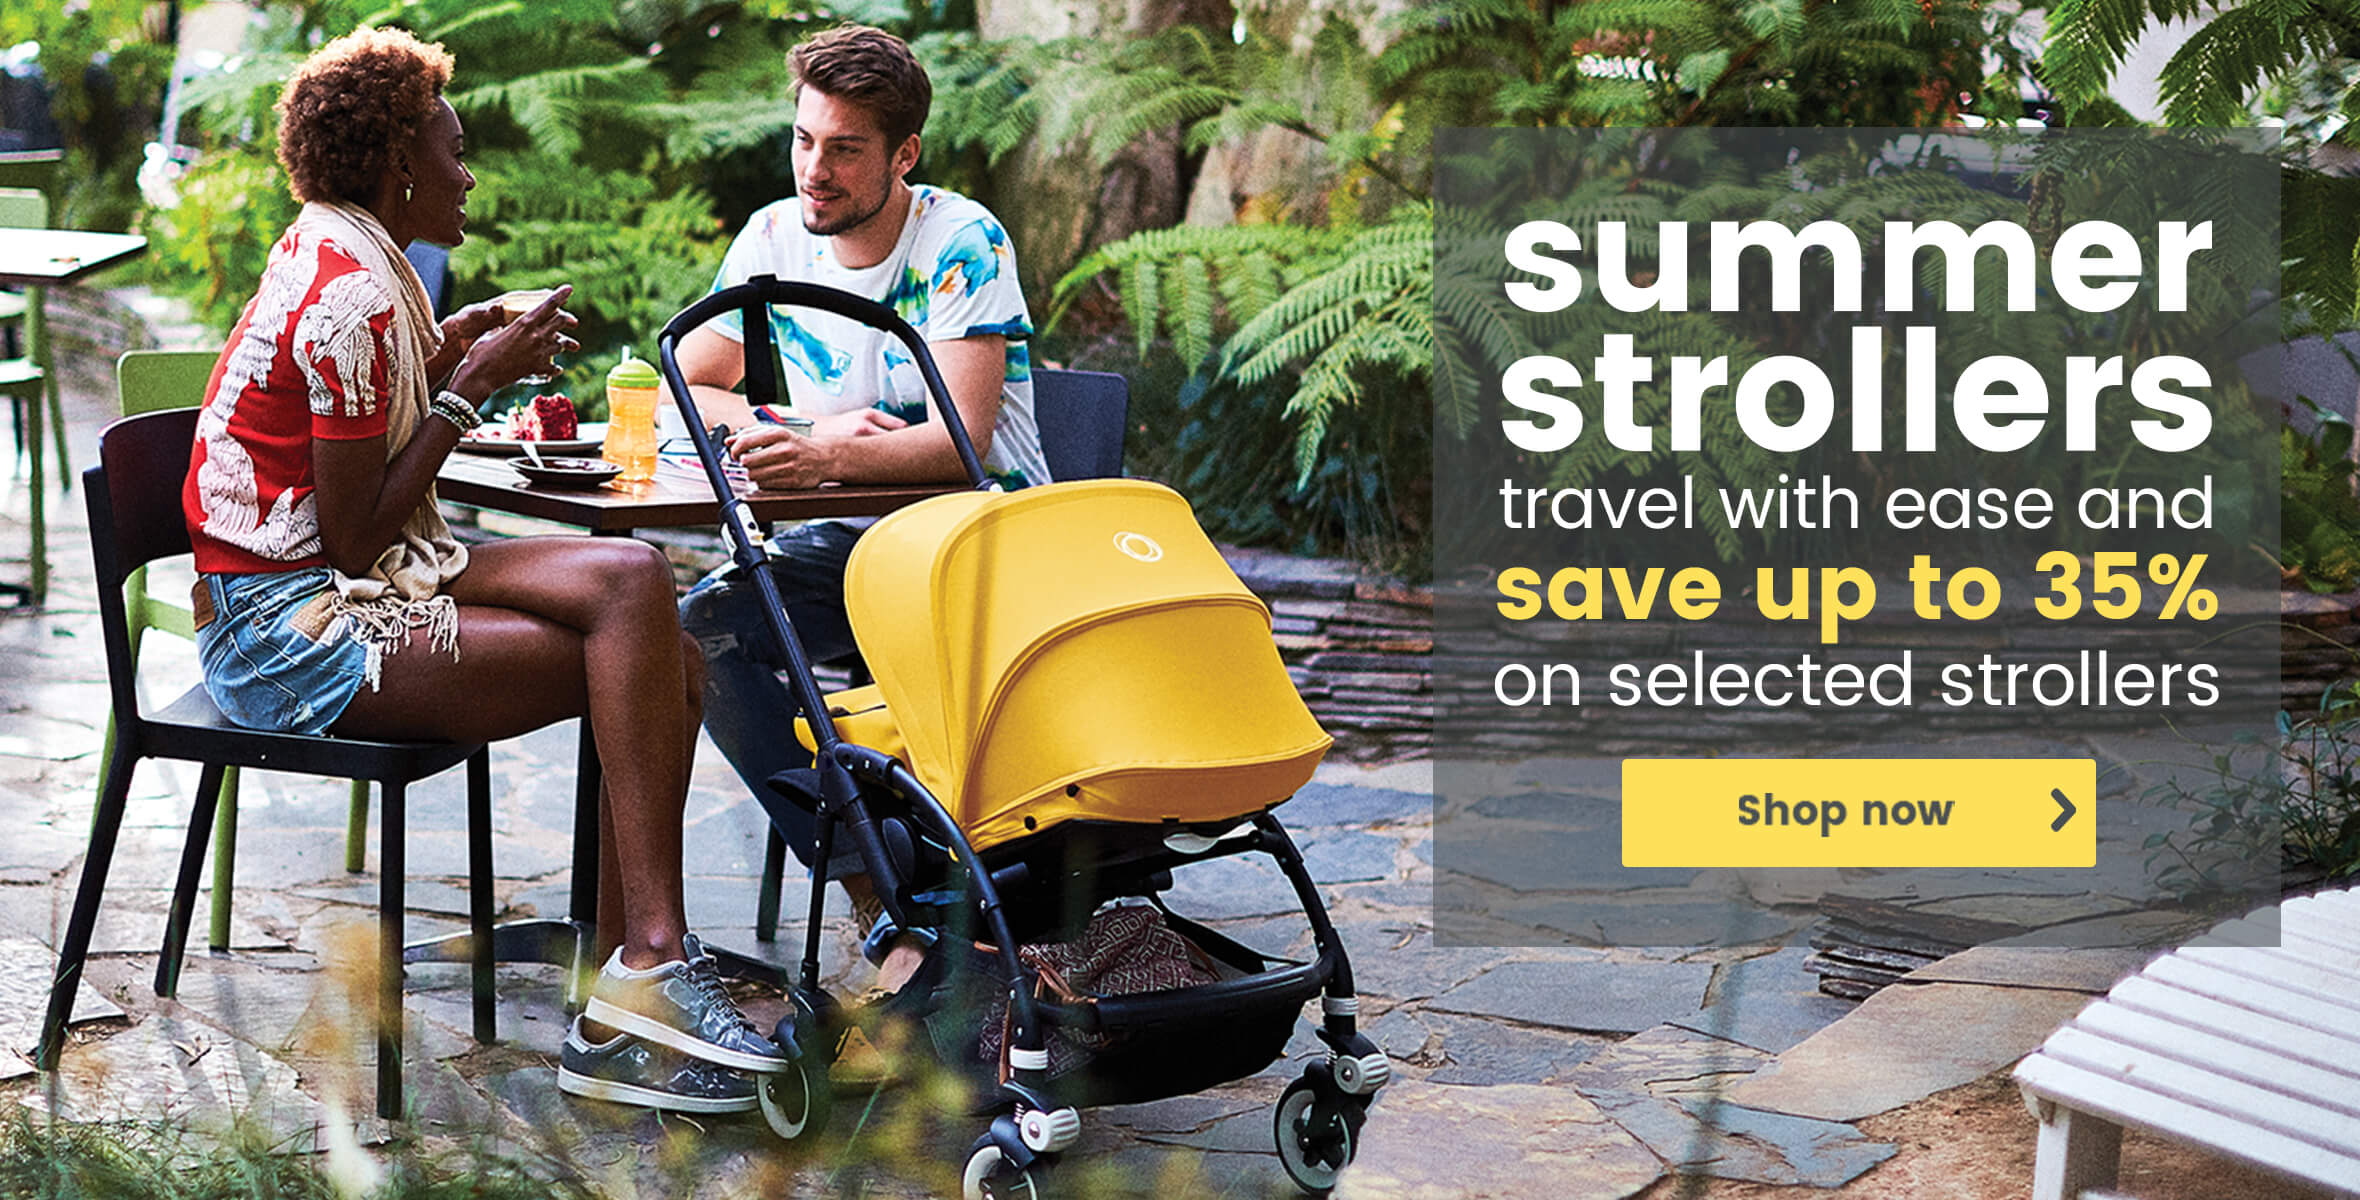 Save up to 34% on selected summer strollers